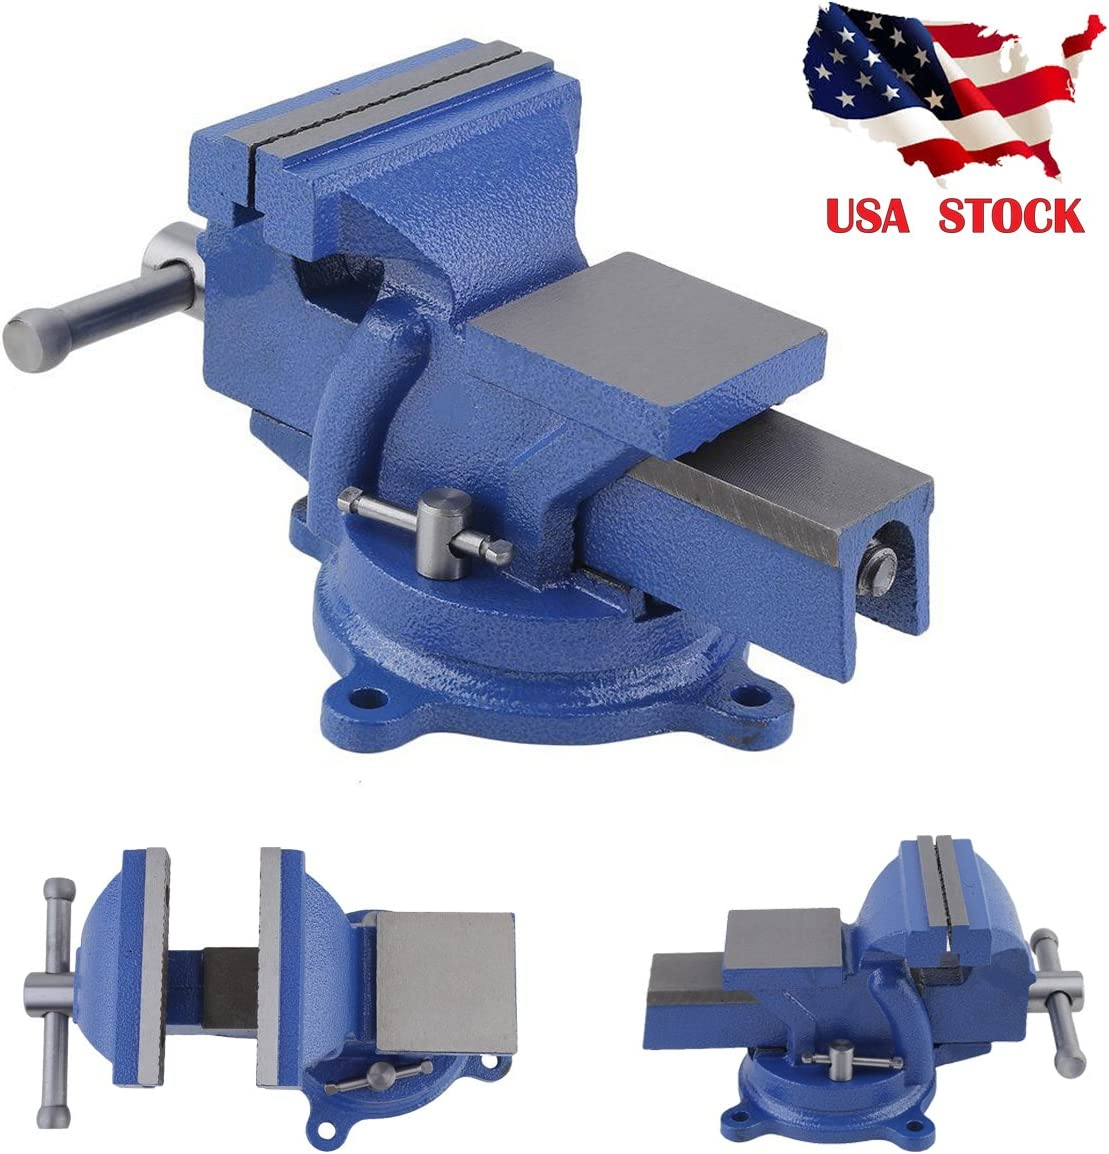 """5/"""" Non-Swivel Milling Lock Vise Bench Clamp Fix Workpieces Secure 125mm Width"""